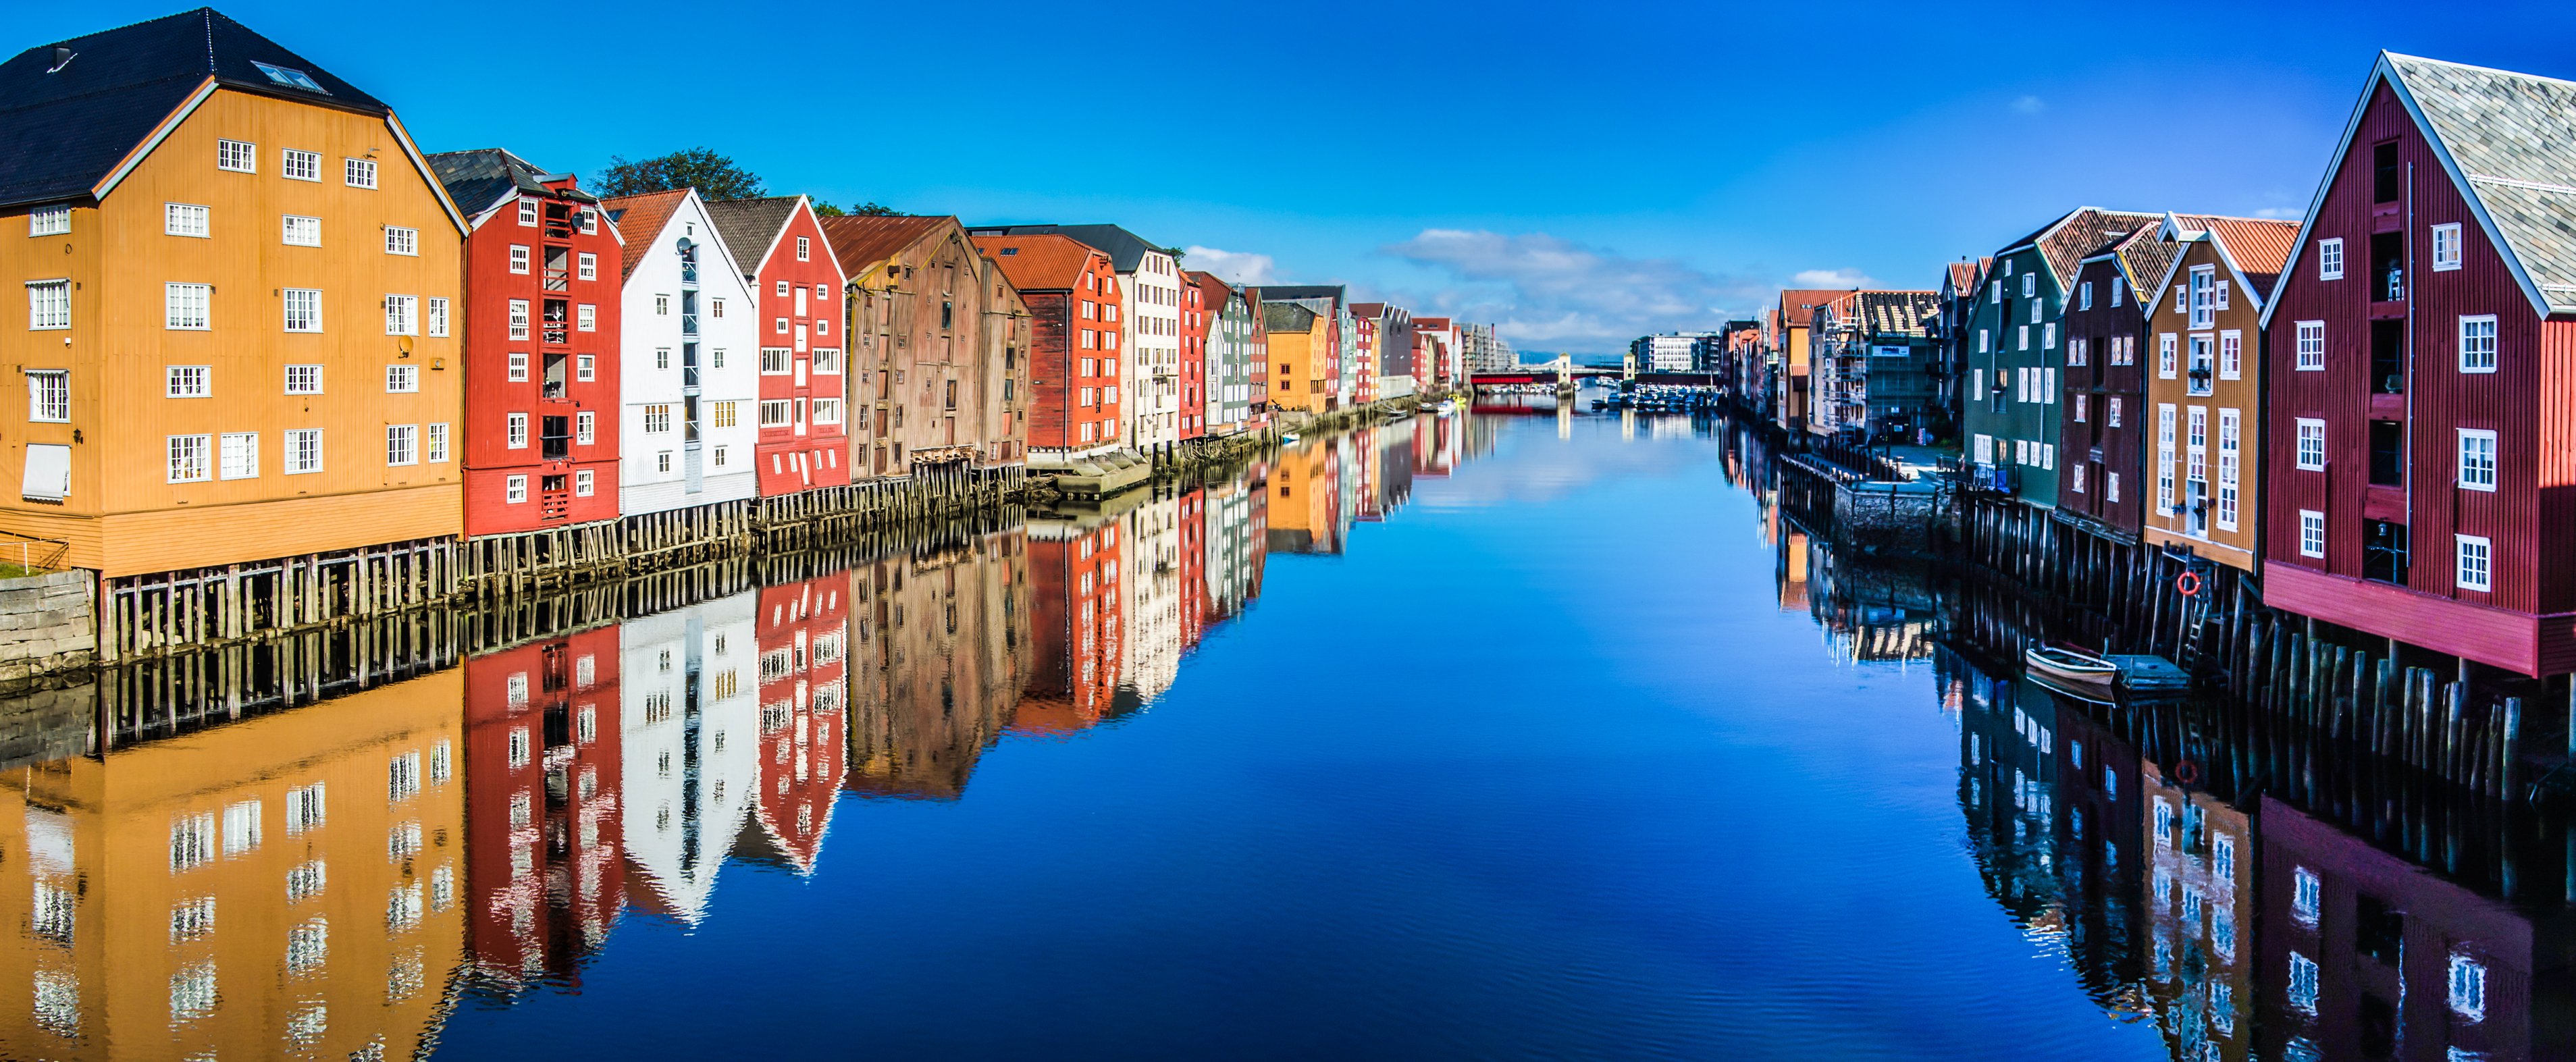 The city of Trondheim in Norway